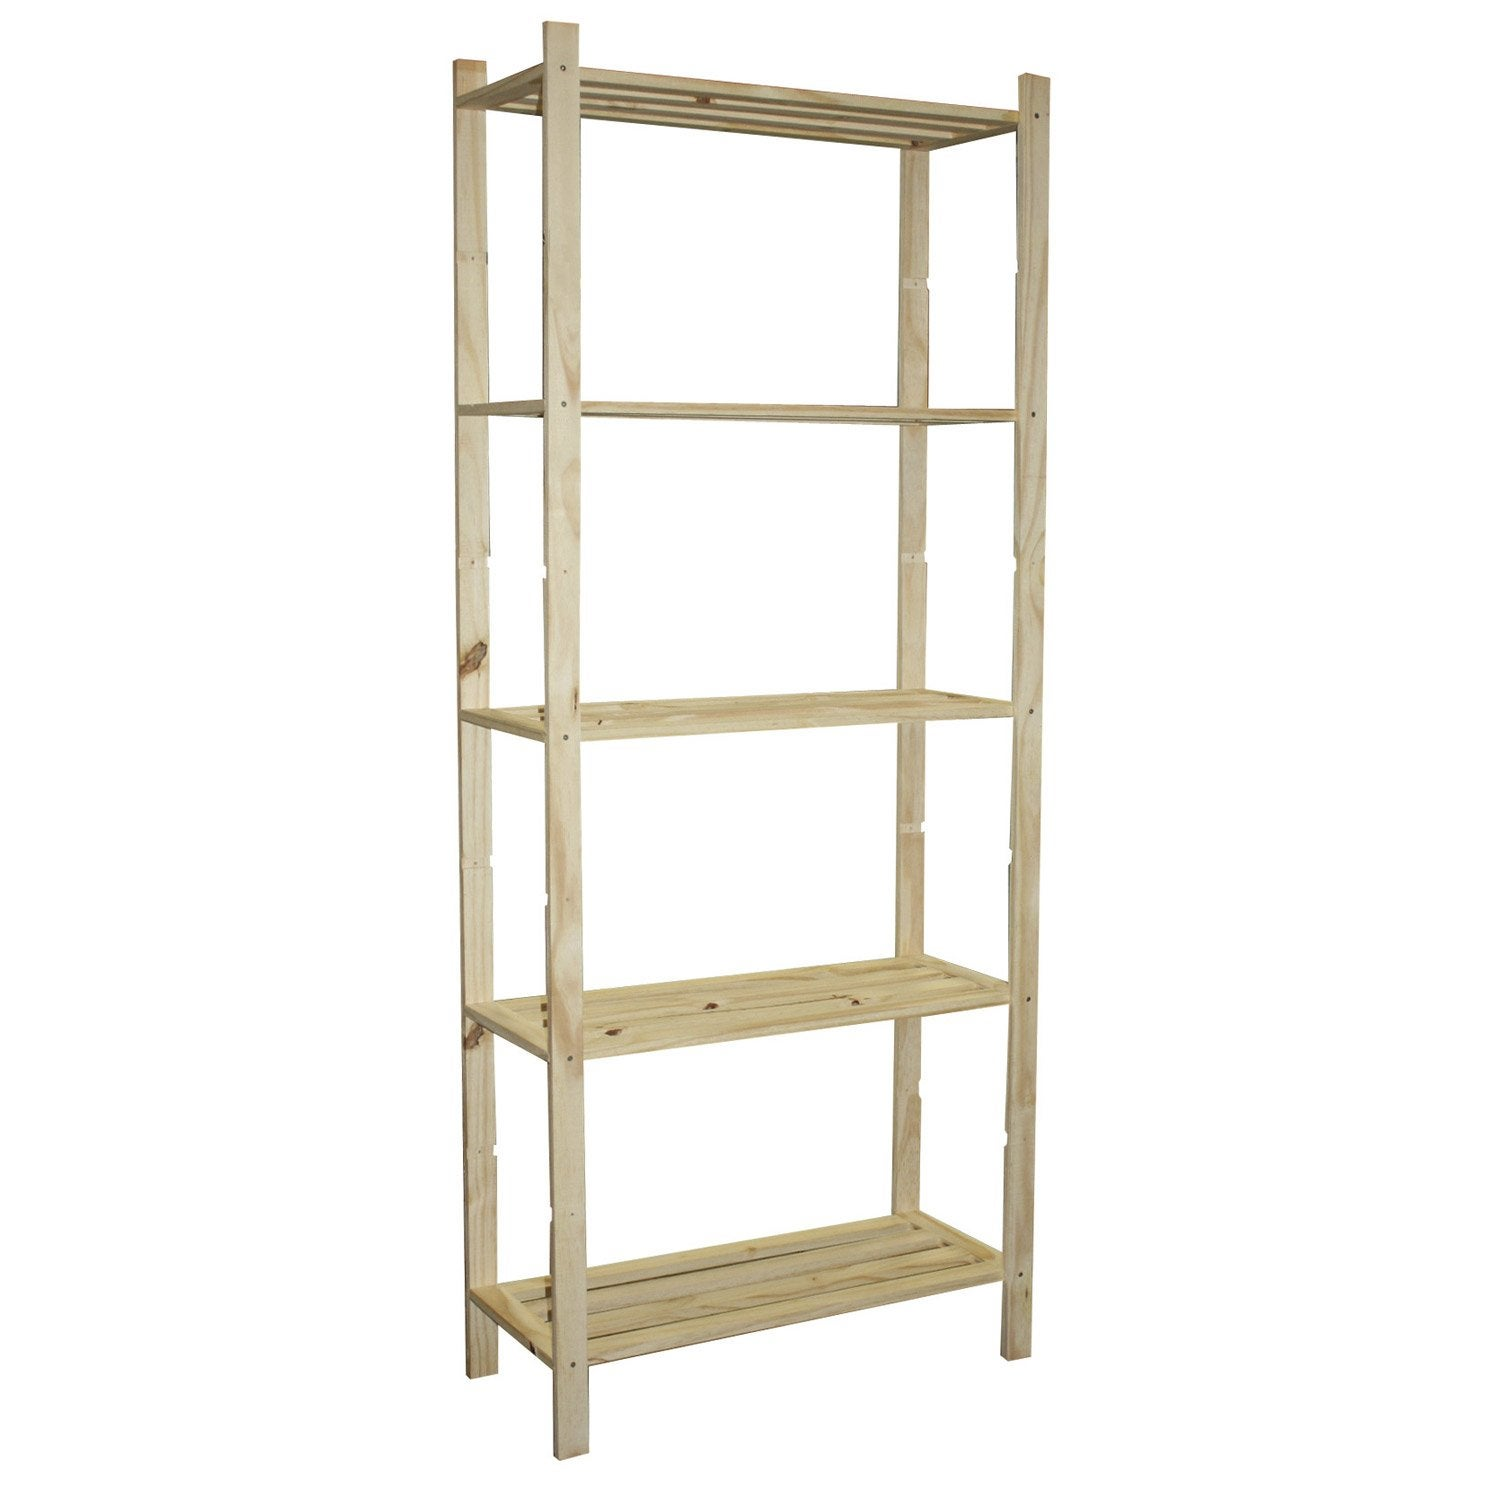 Etag re pin 5 tablettes x x cm leroy - Etagere pas chere pour garage ...